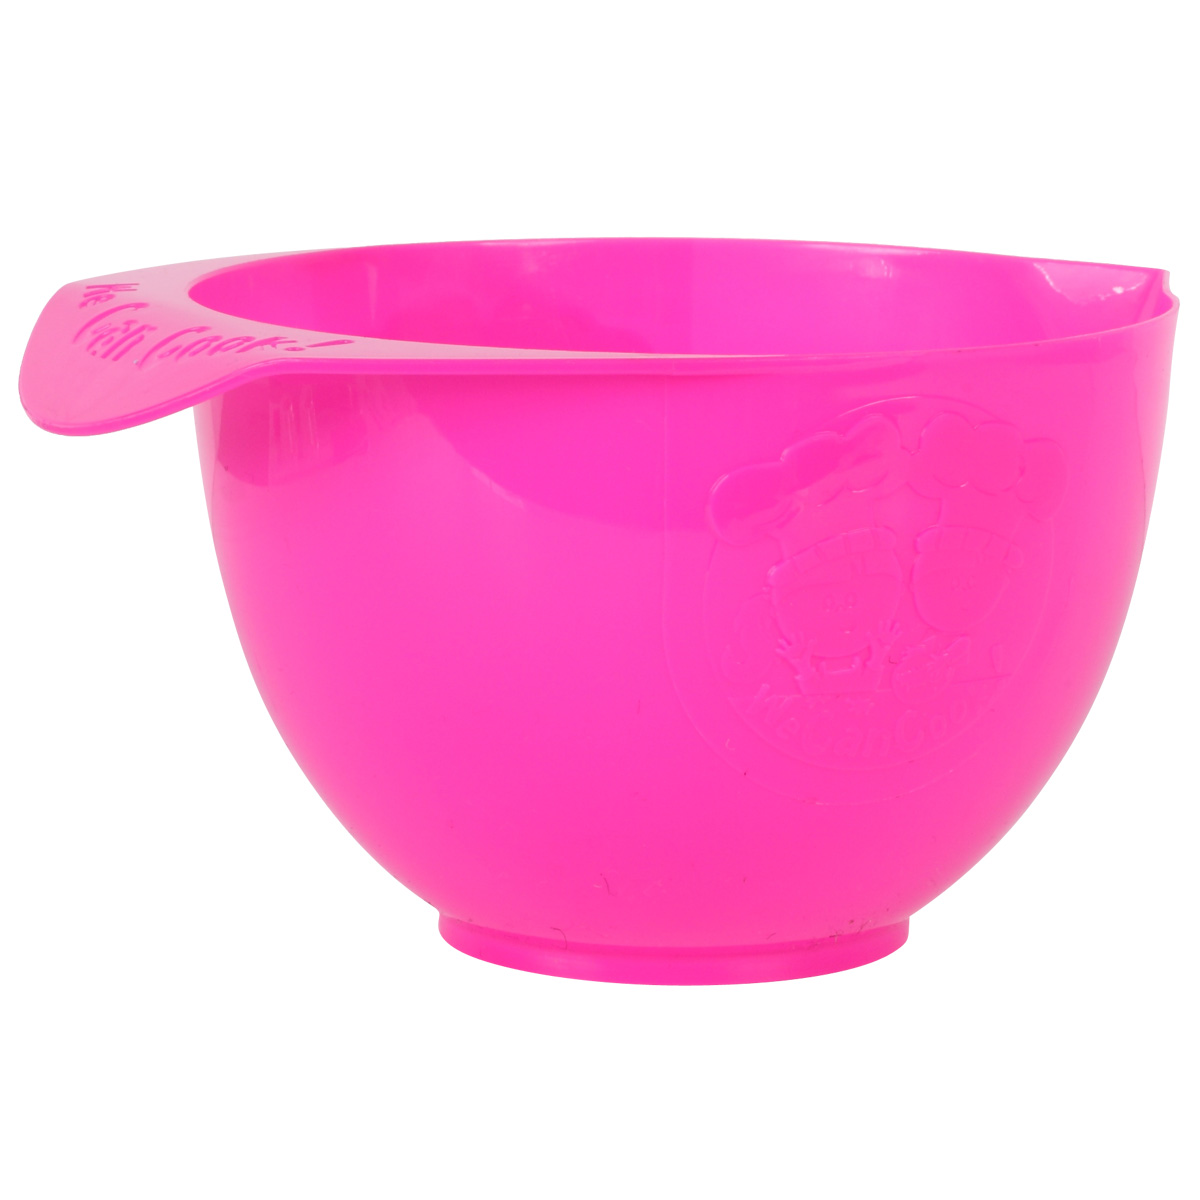 Shop for pink mixing bowl online at Target. Free shipping on purchases over $35 and save 5% every day with your Target REDcard.